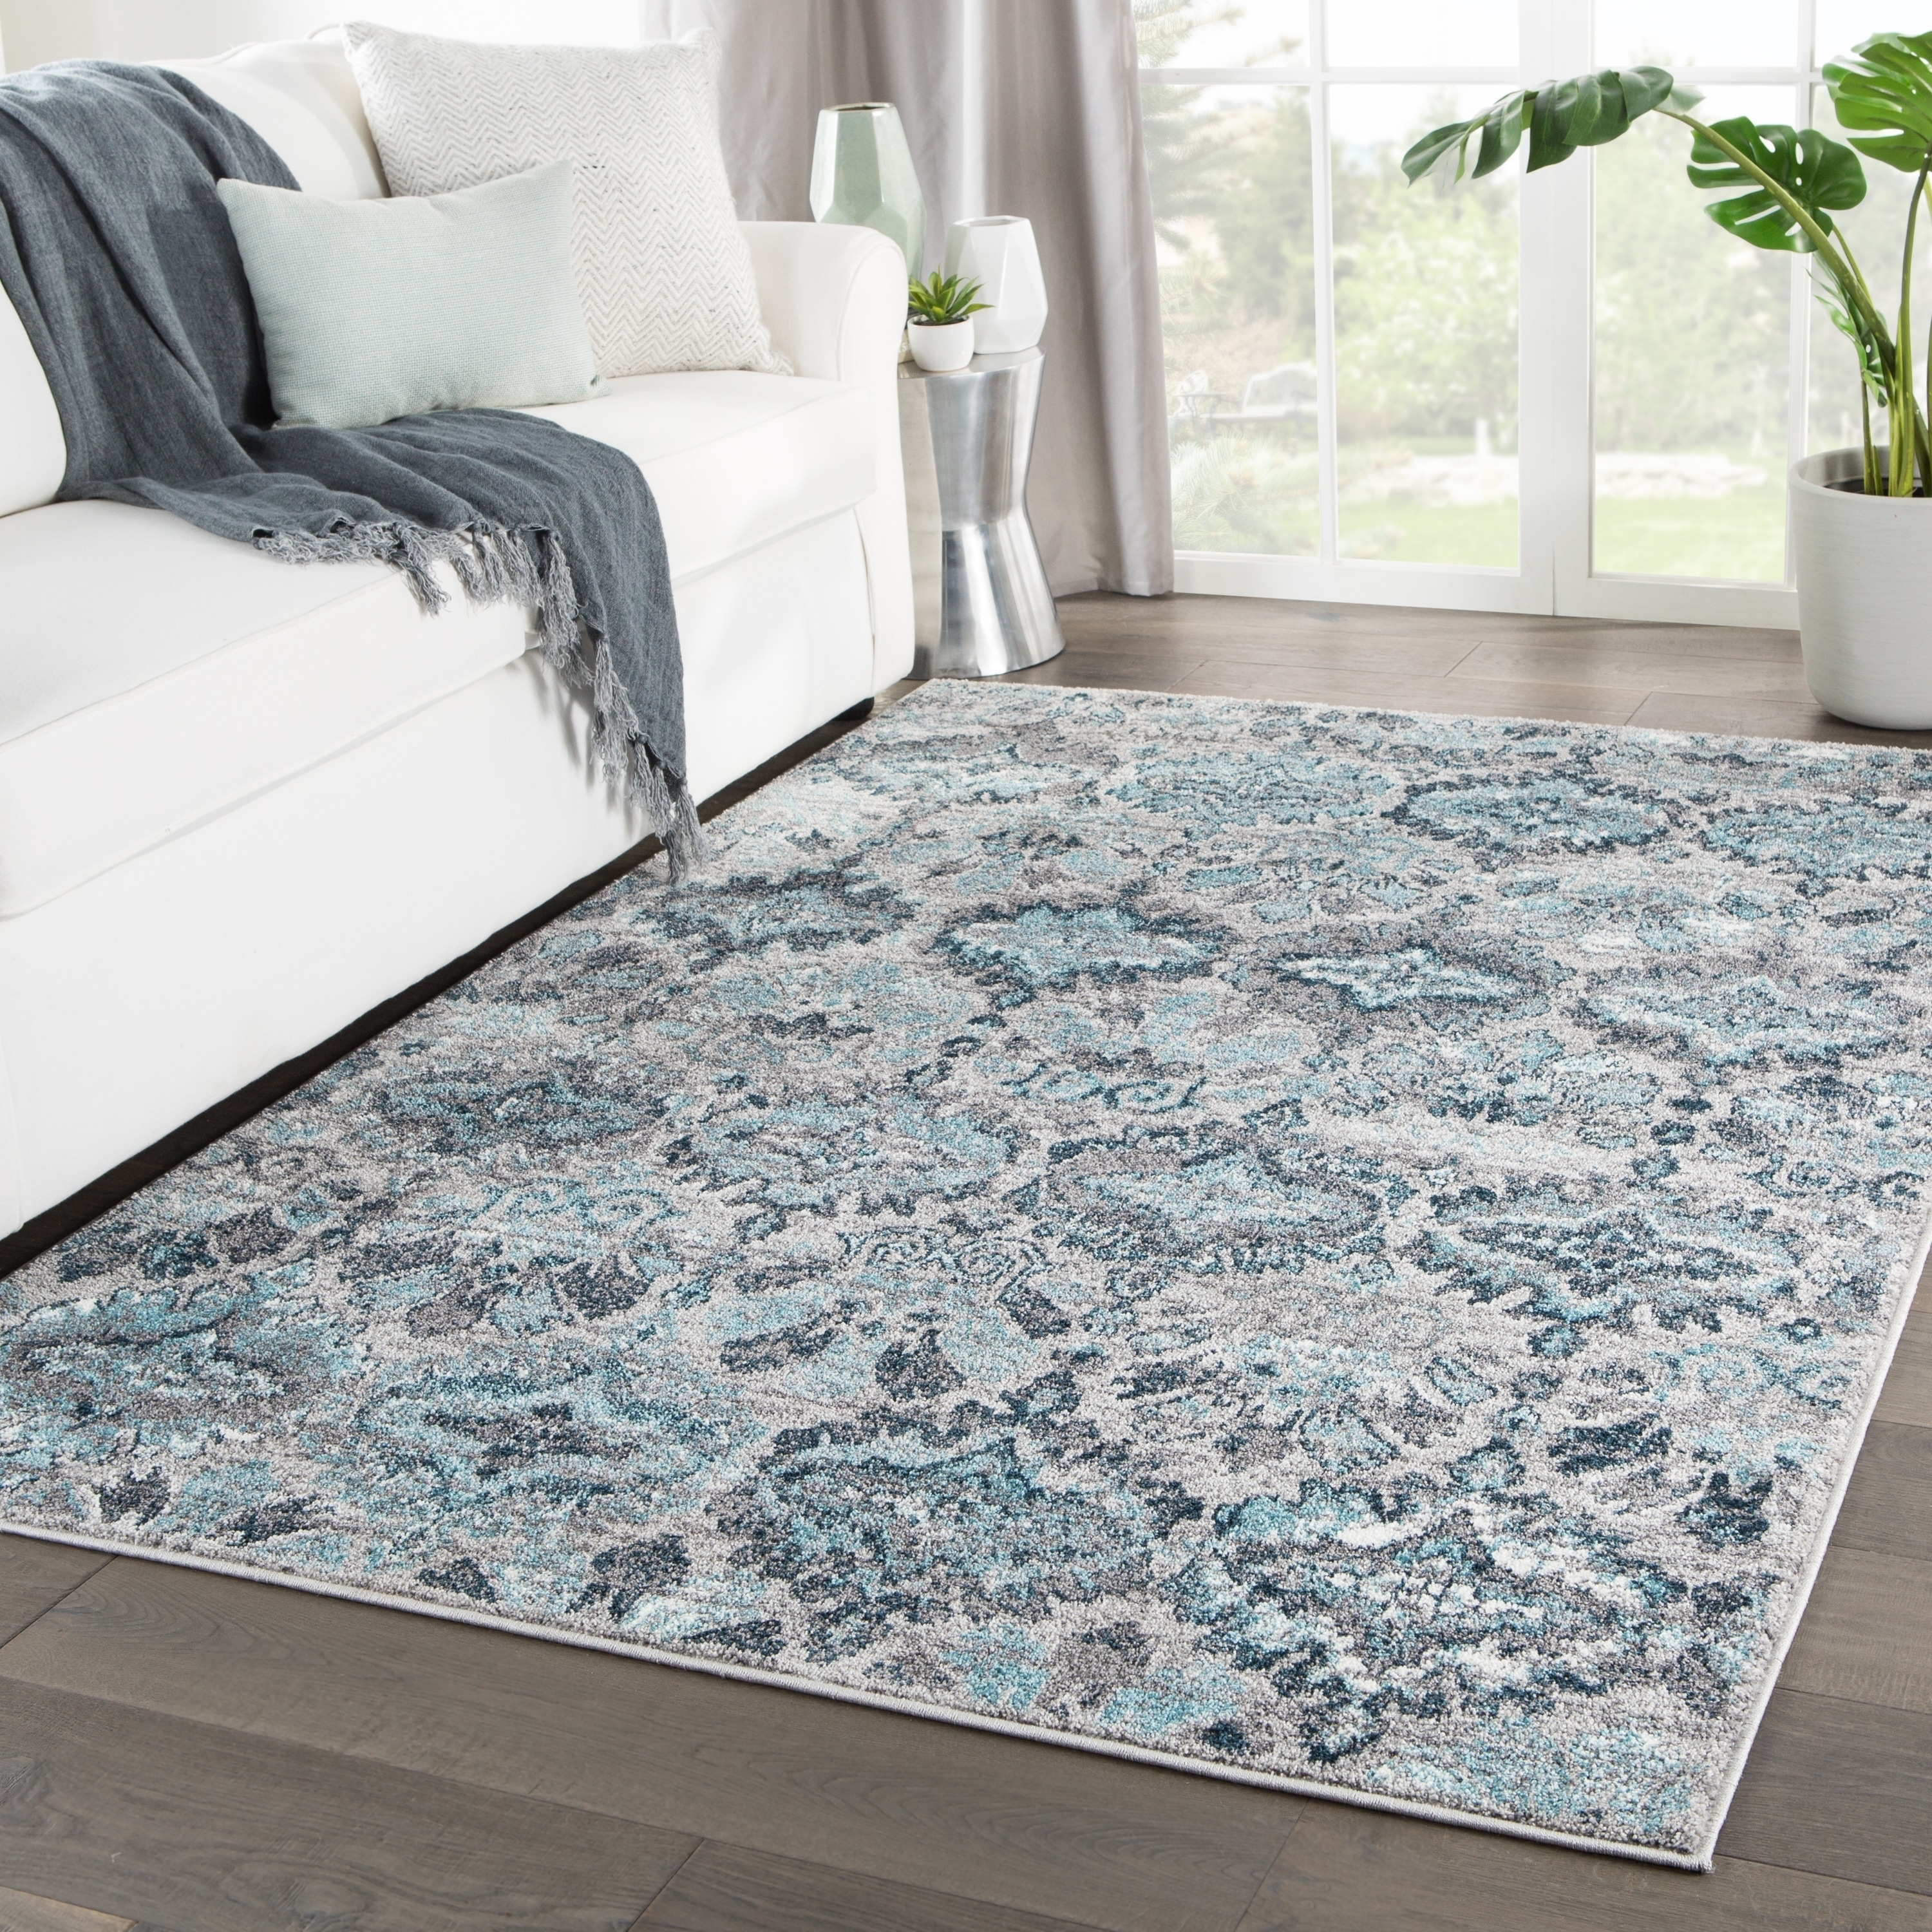 Shop Souta Ikat Gray Turquoise Area Rug 8 10 X12 On Sale Free Shipping Today Overstock 23554251